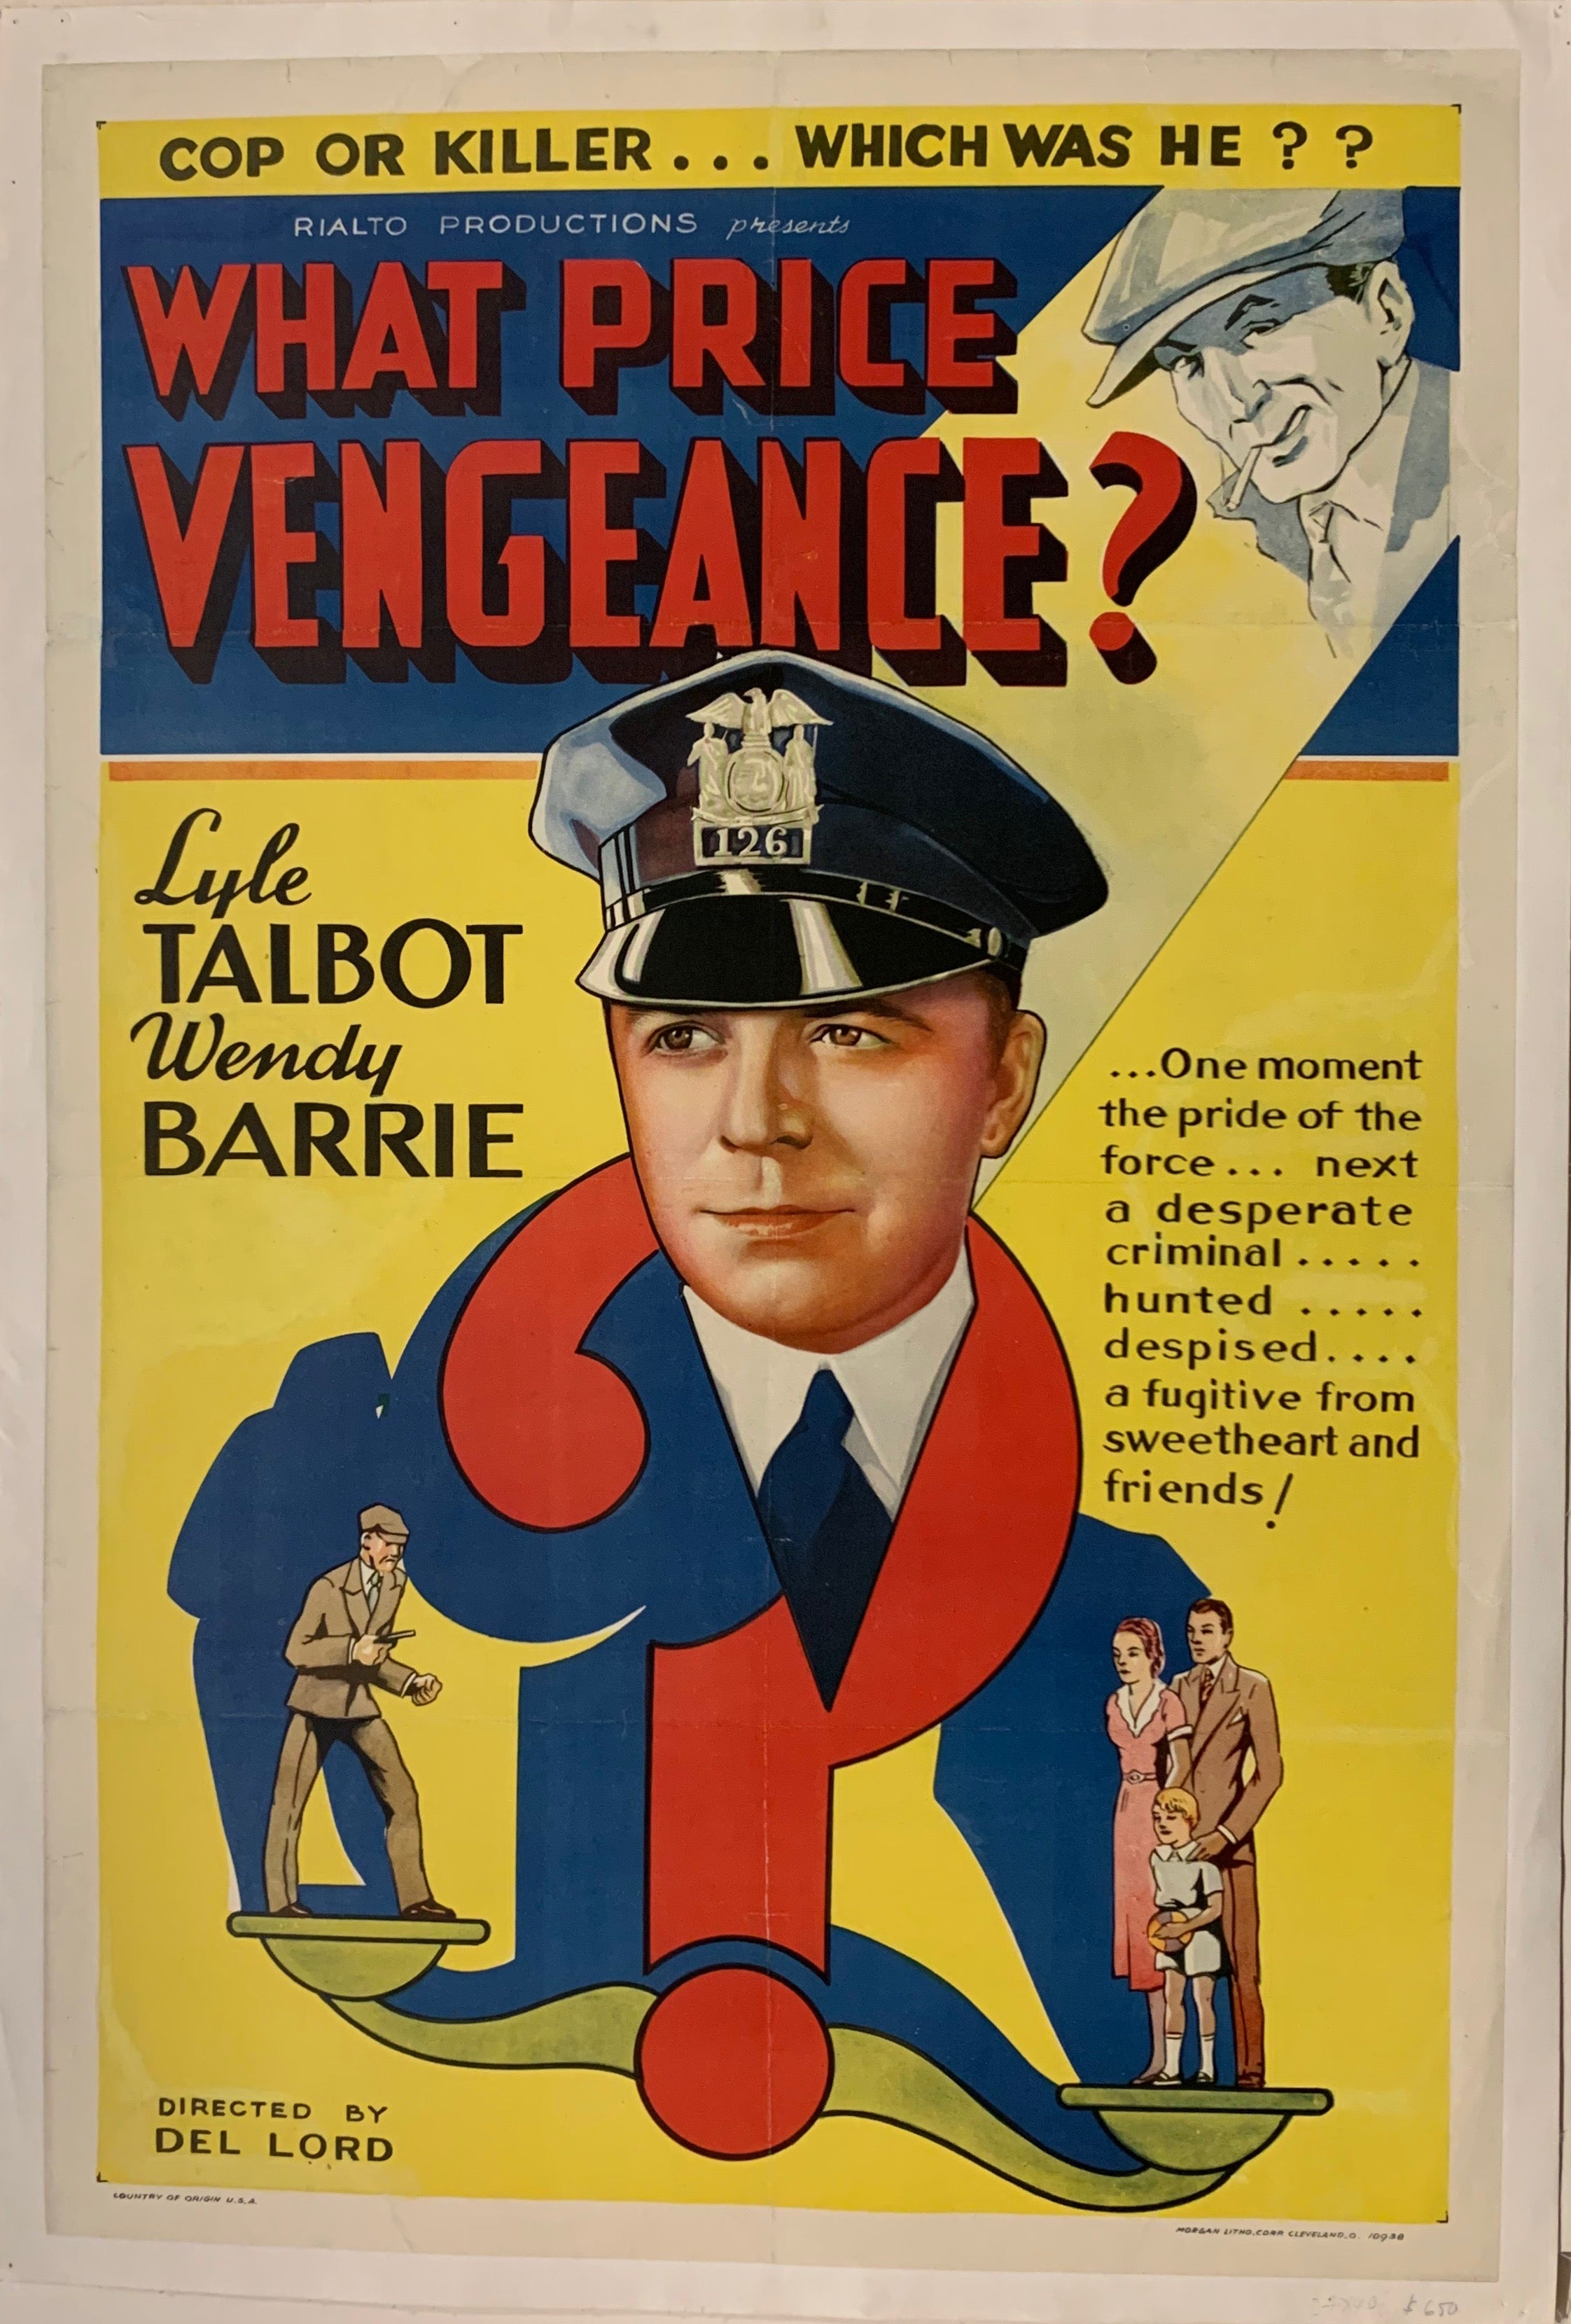 What Price Vengance? Film Poster